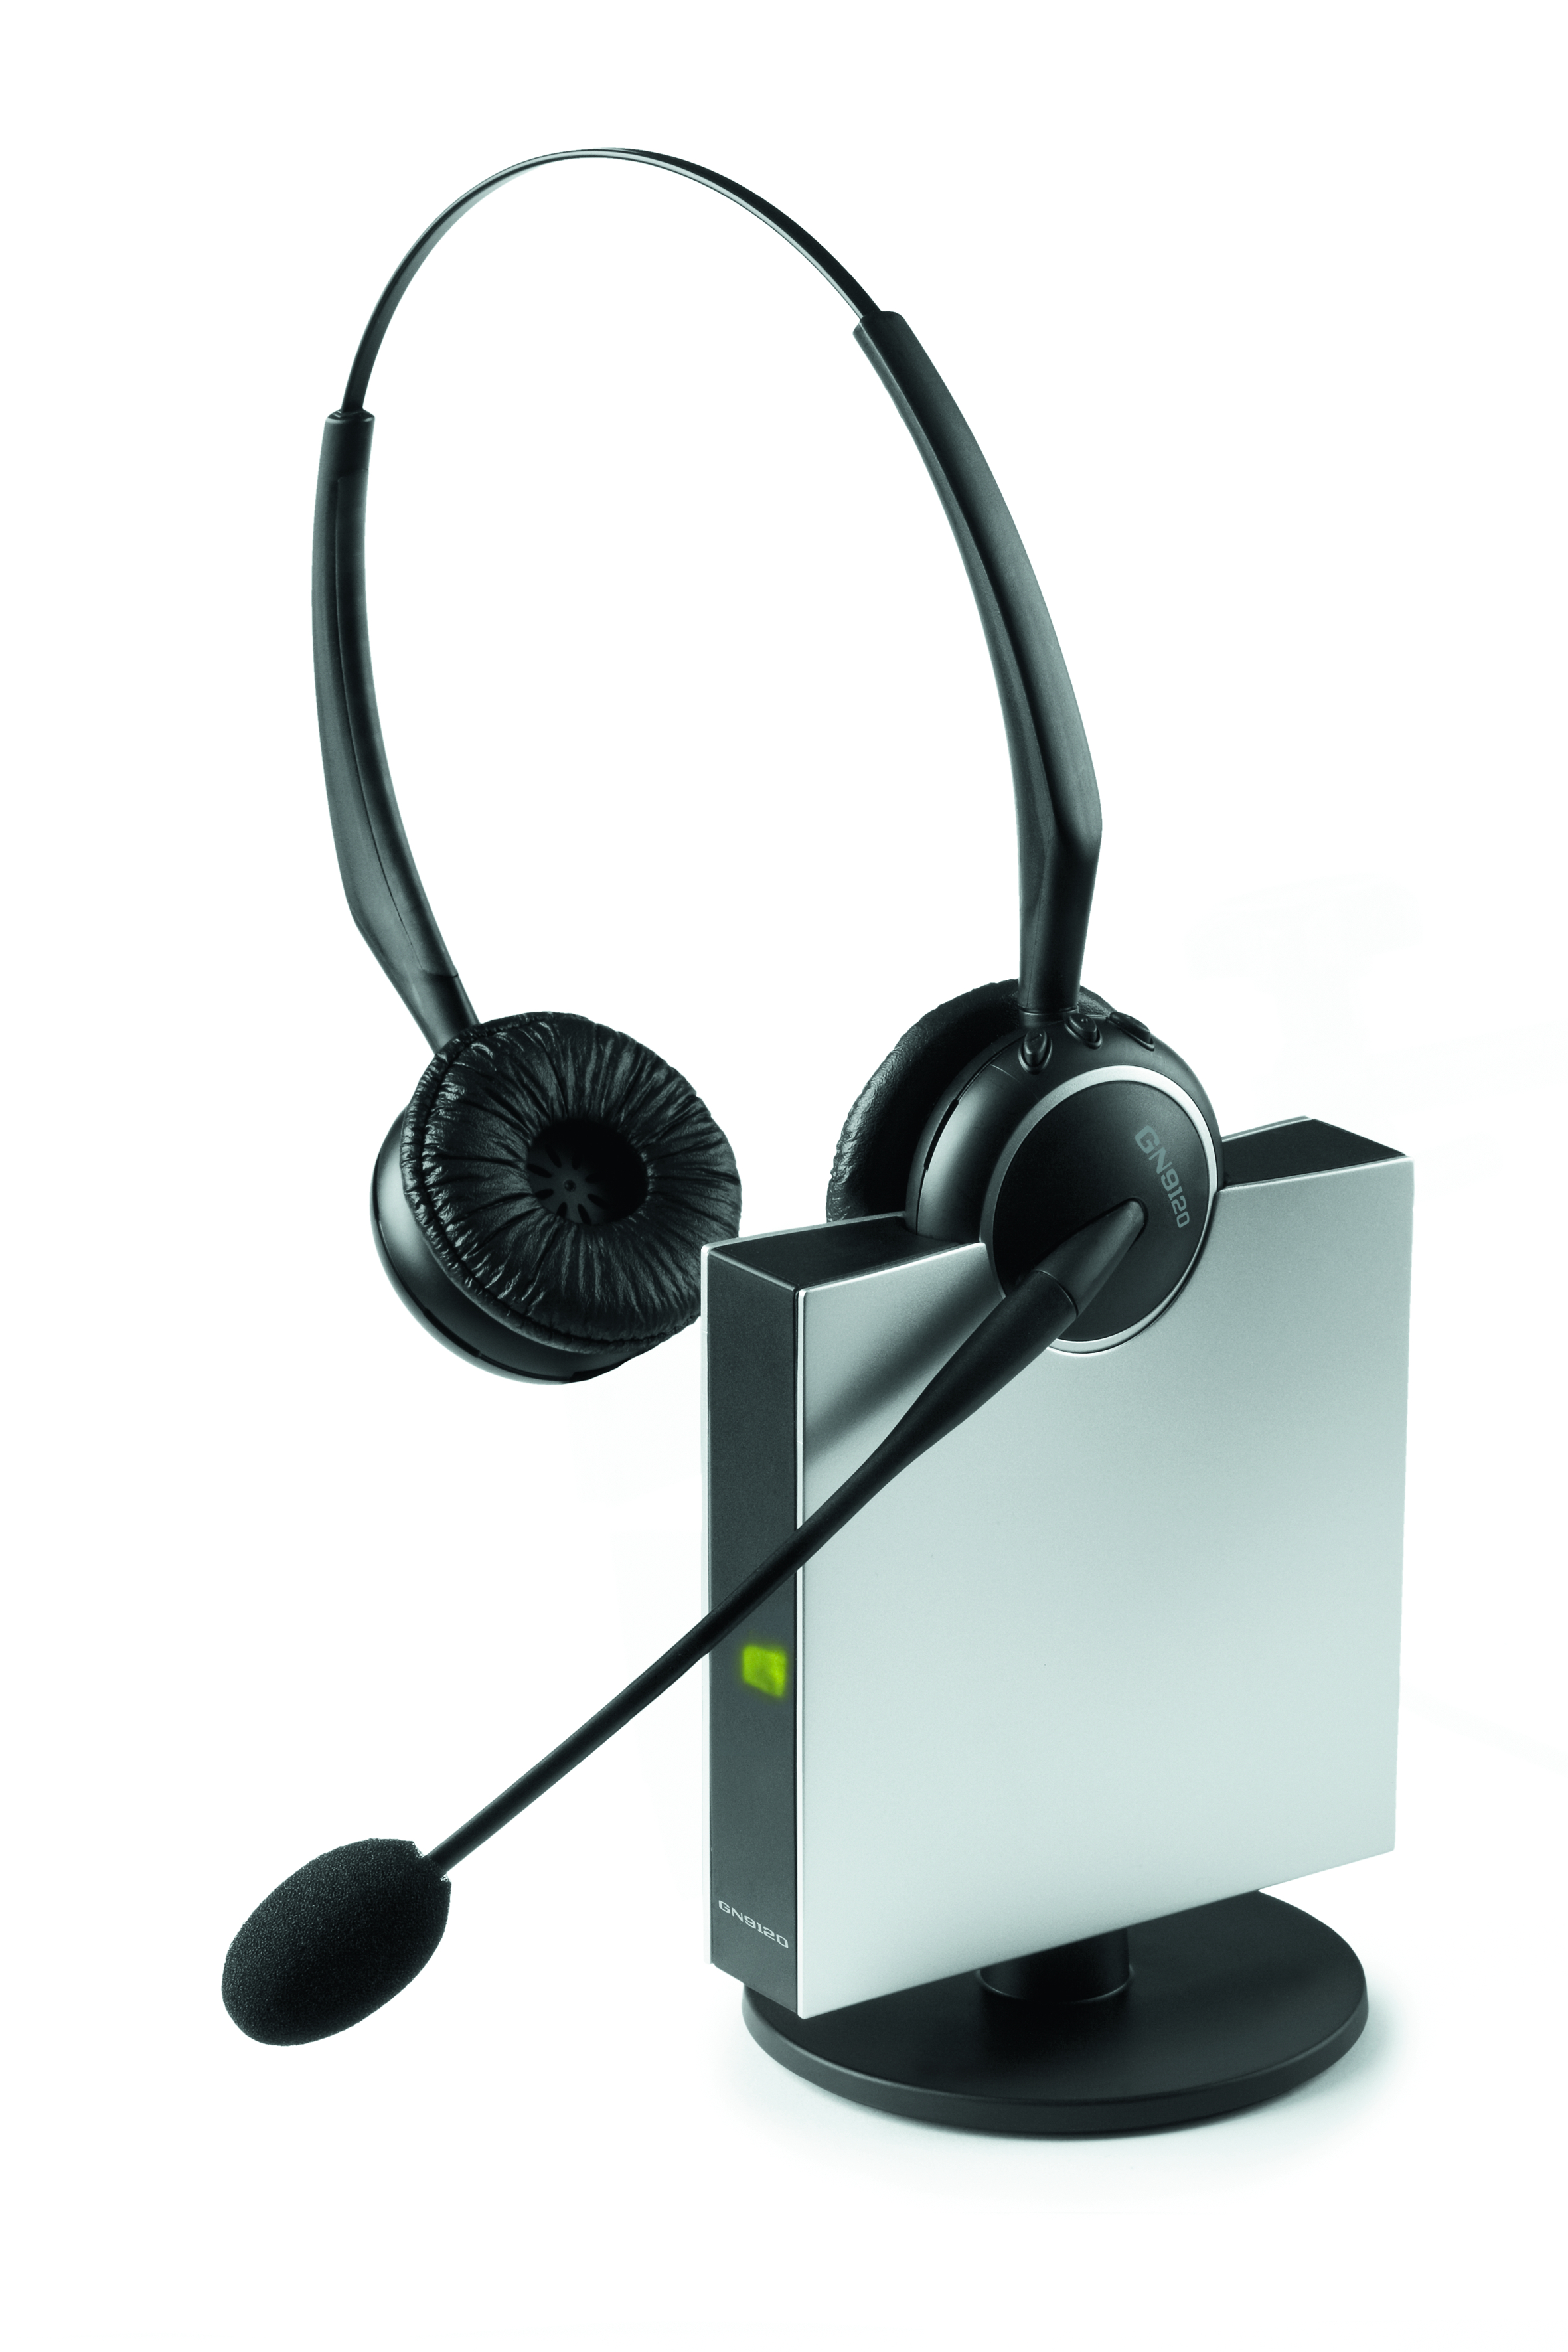 311ef42a9ae 10777 91292802 at3win at3winheader PMR446 M458FJ BL90DN. gn netcom jabra  gn9120 duo wireless headset £115. PMCTELECOM